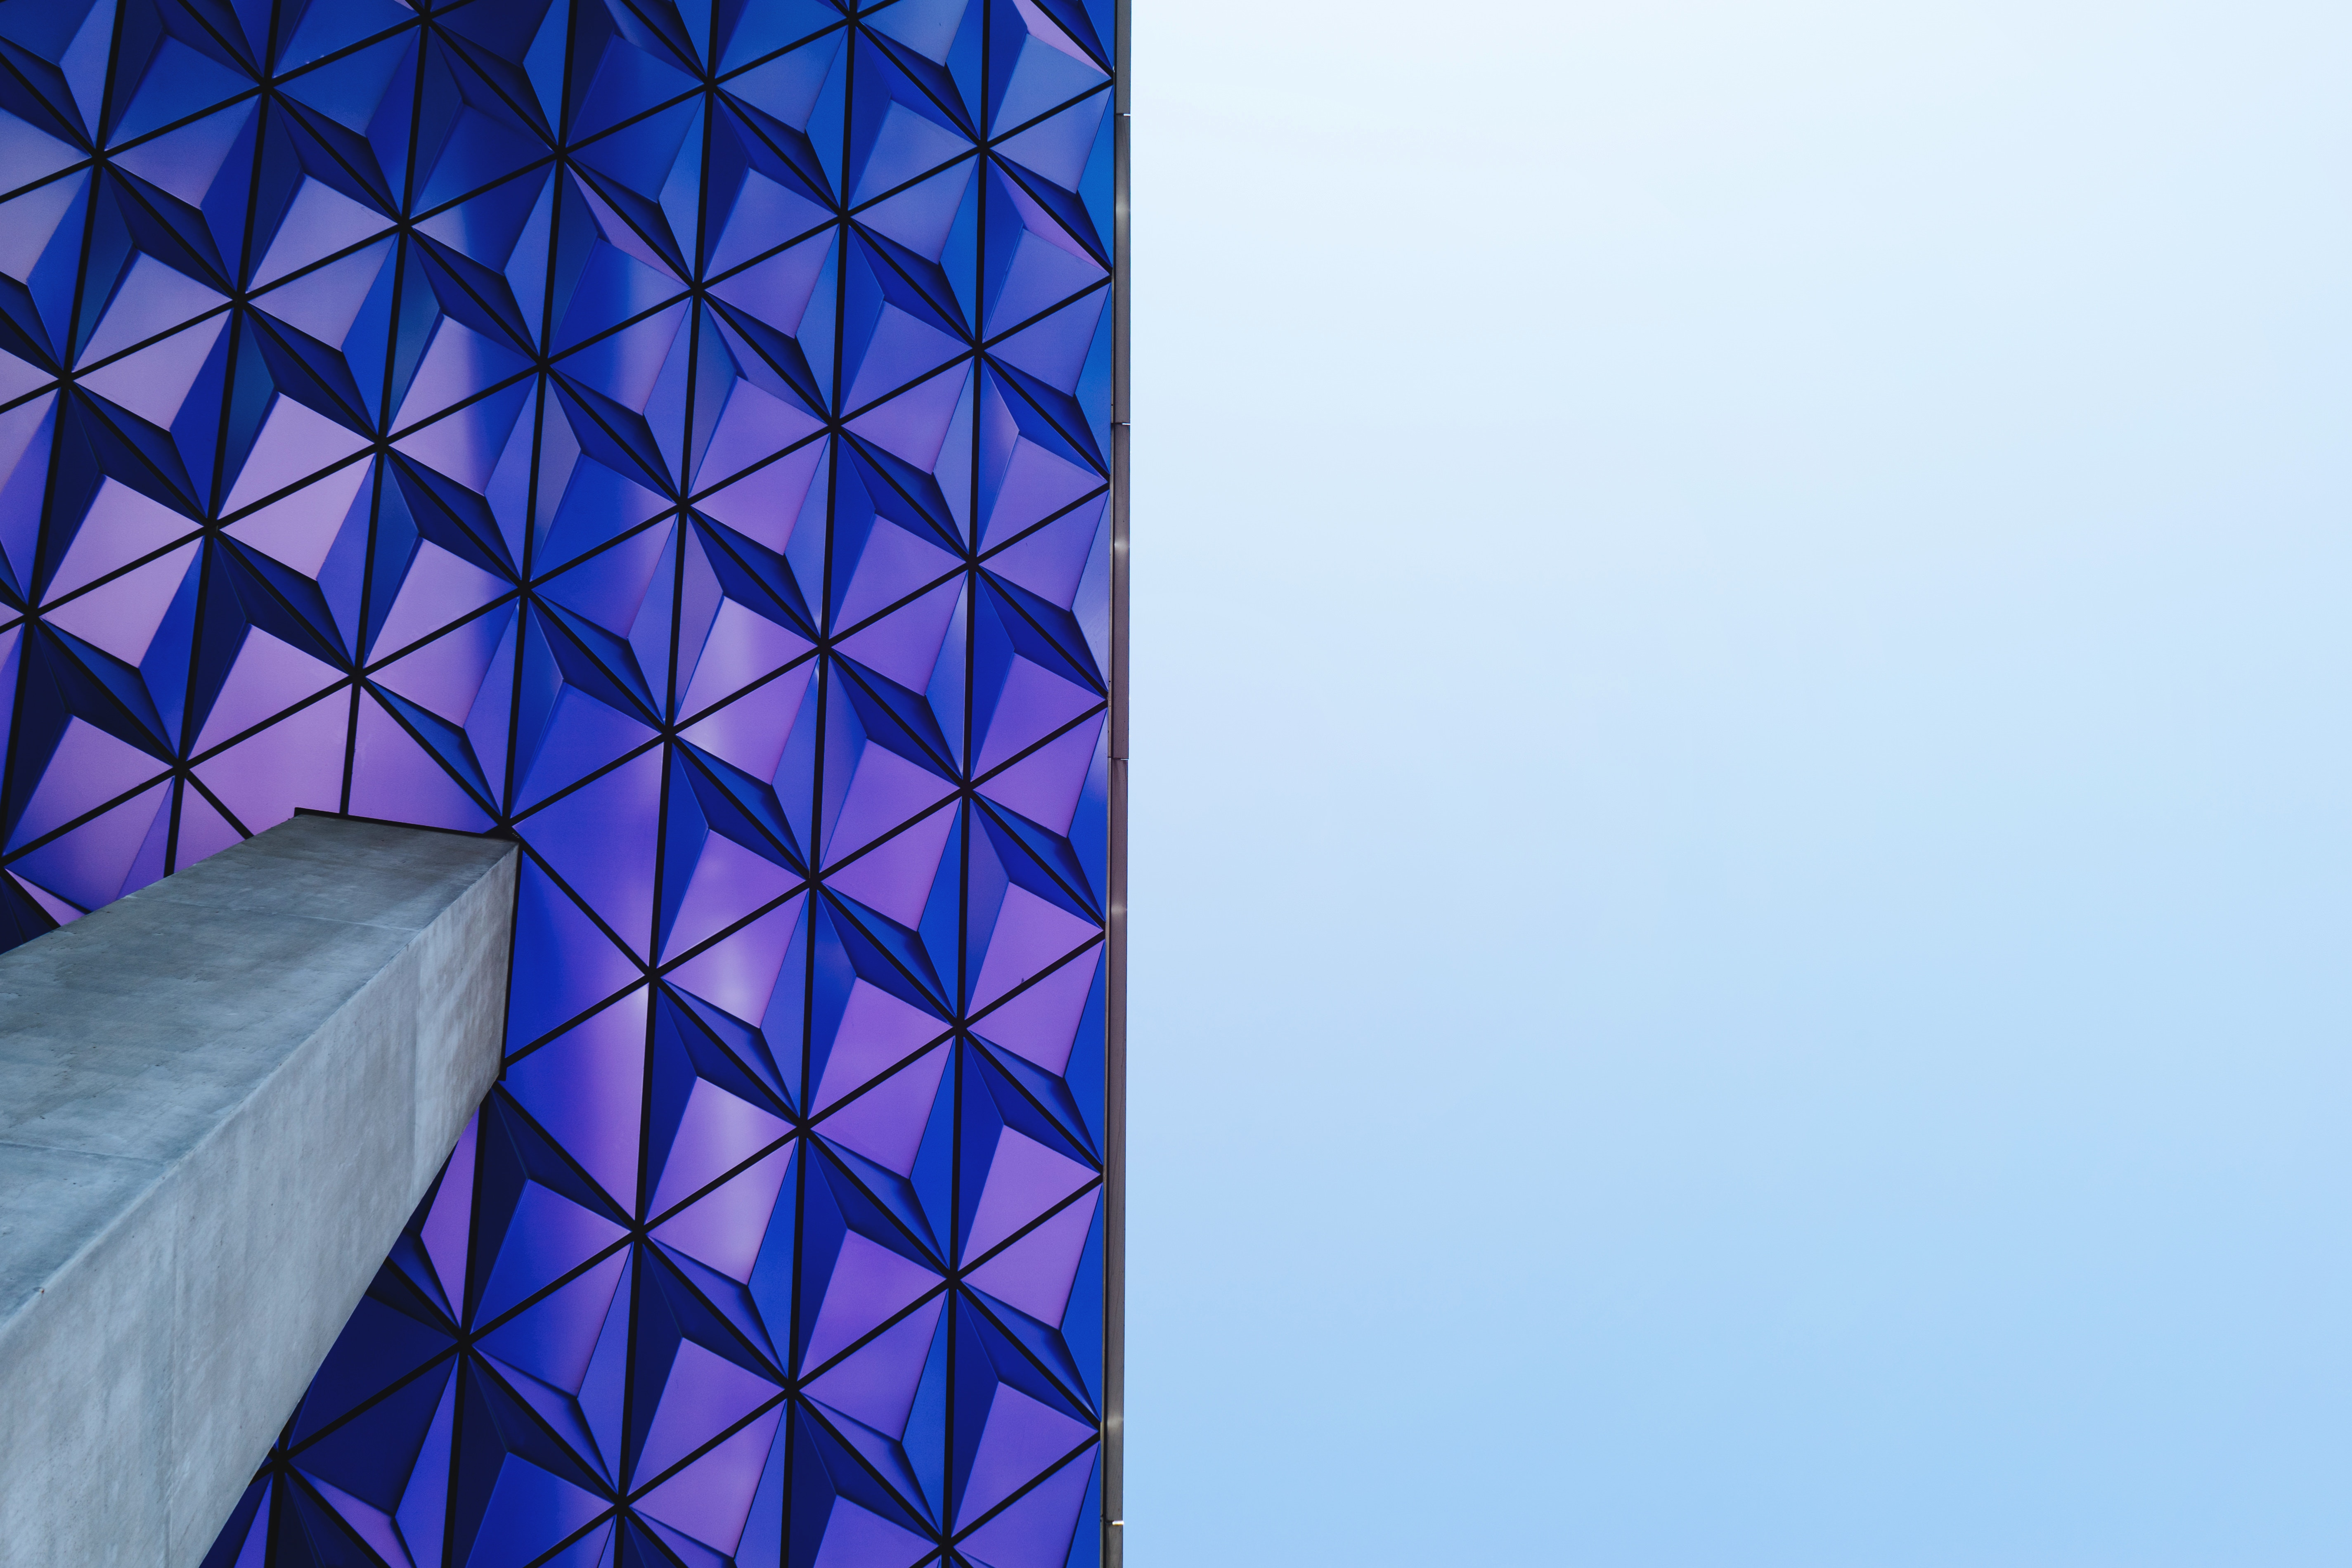 abstract architecture purple